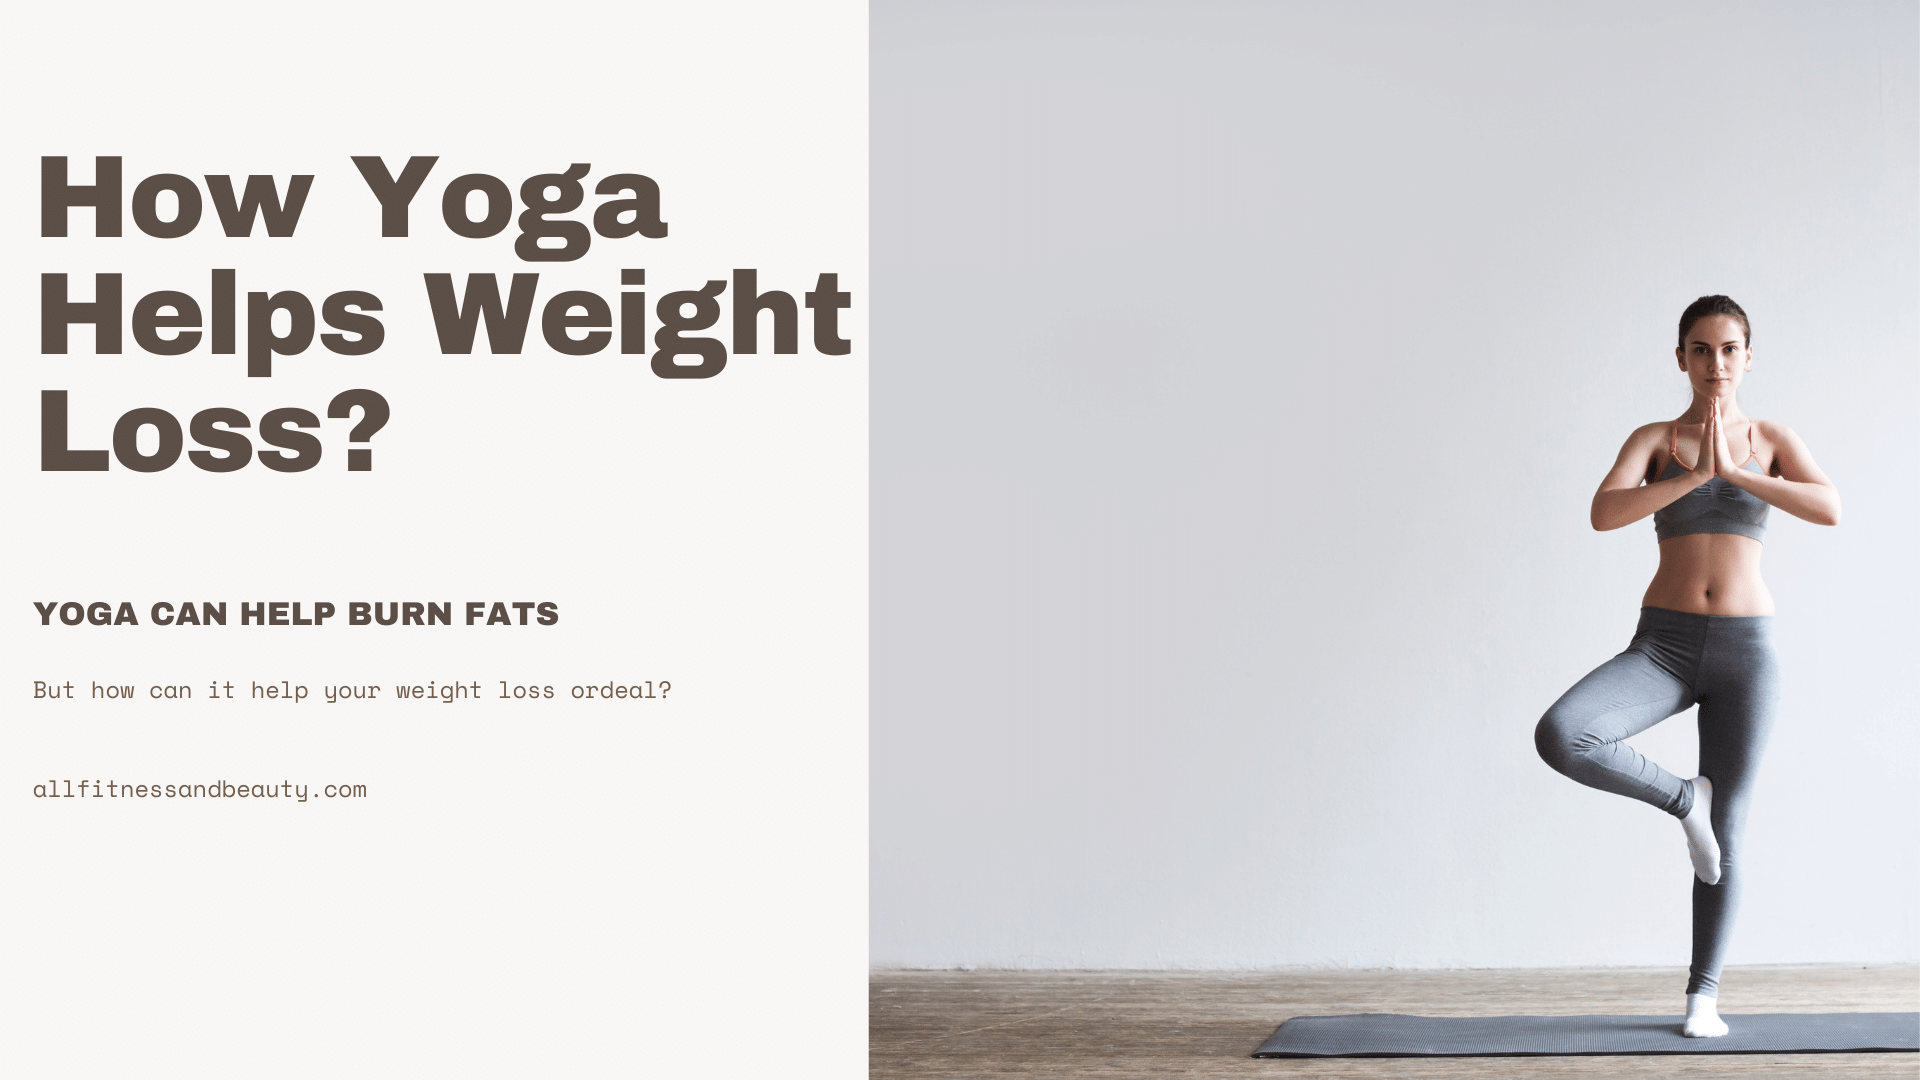 How Yoga Helps Weight Loss